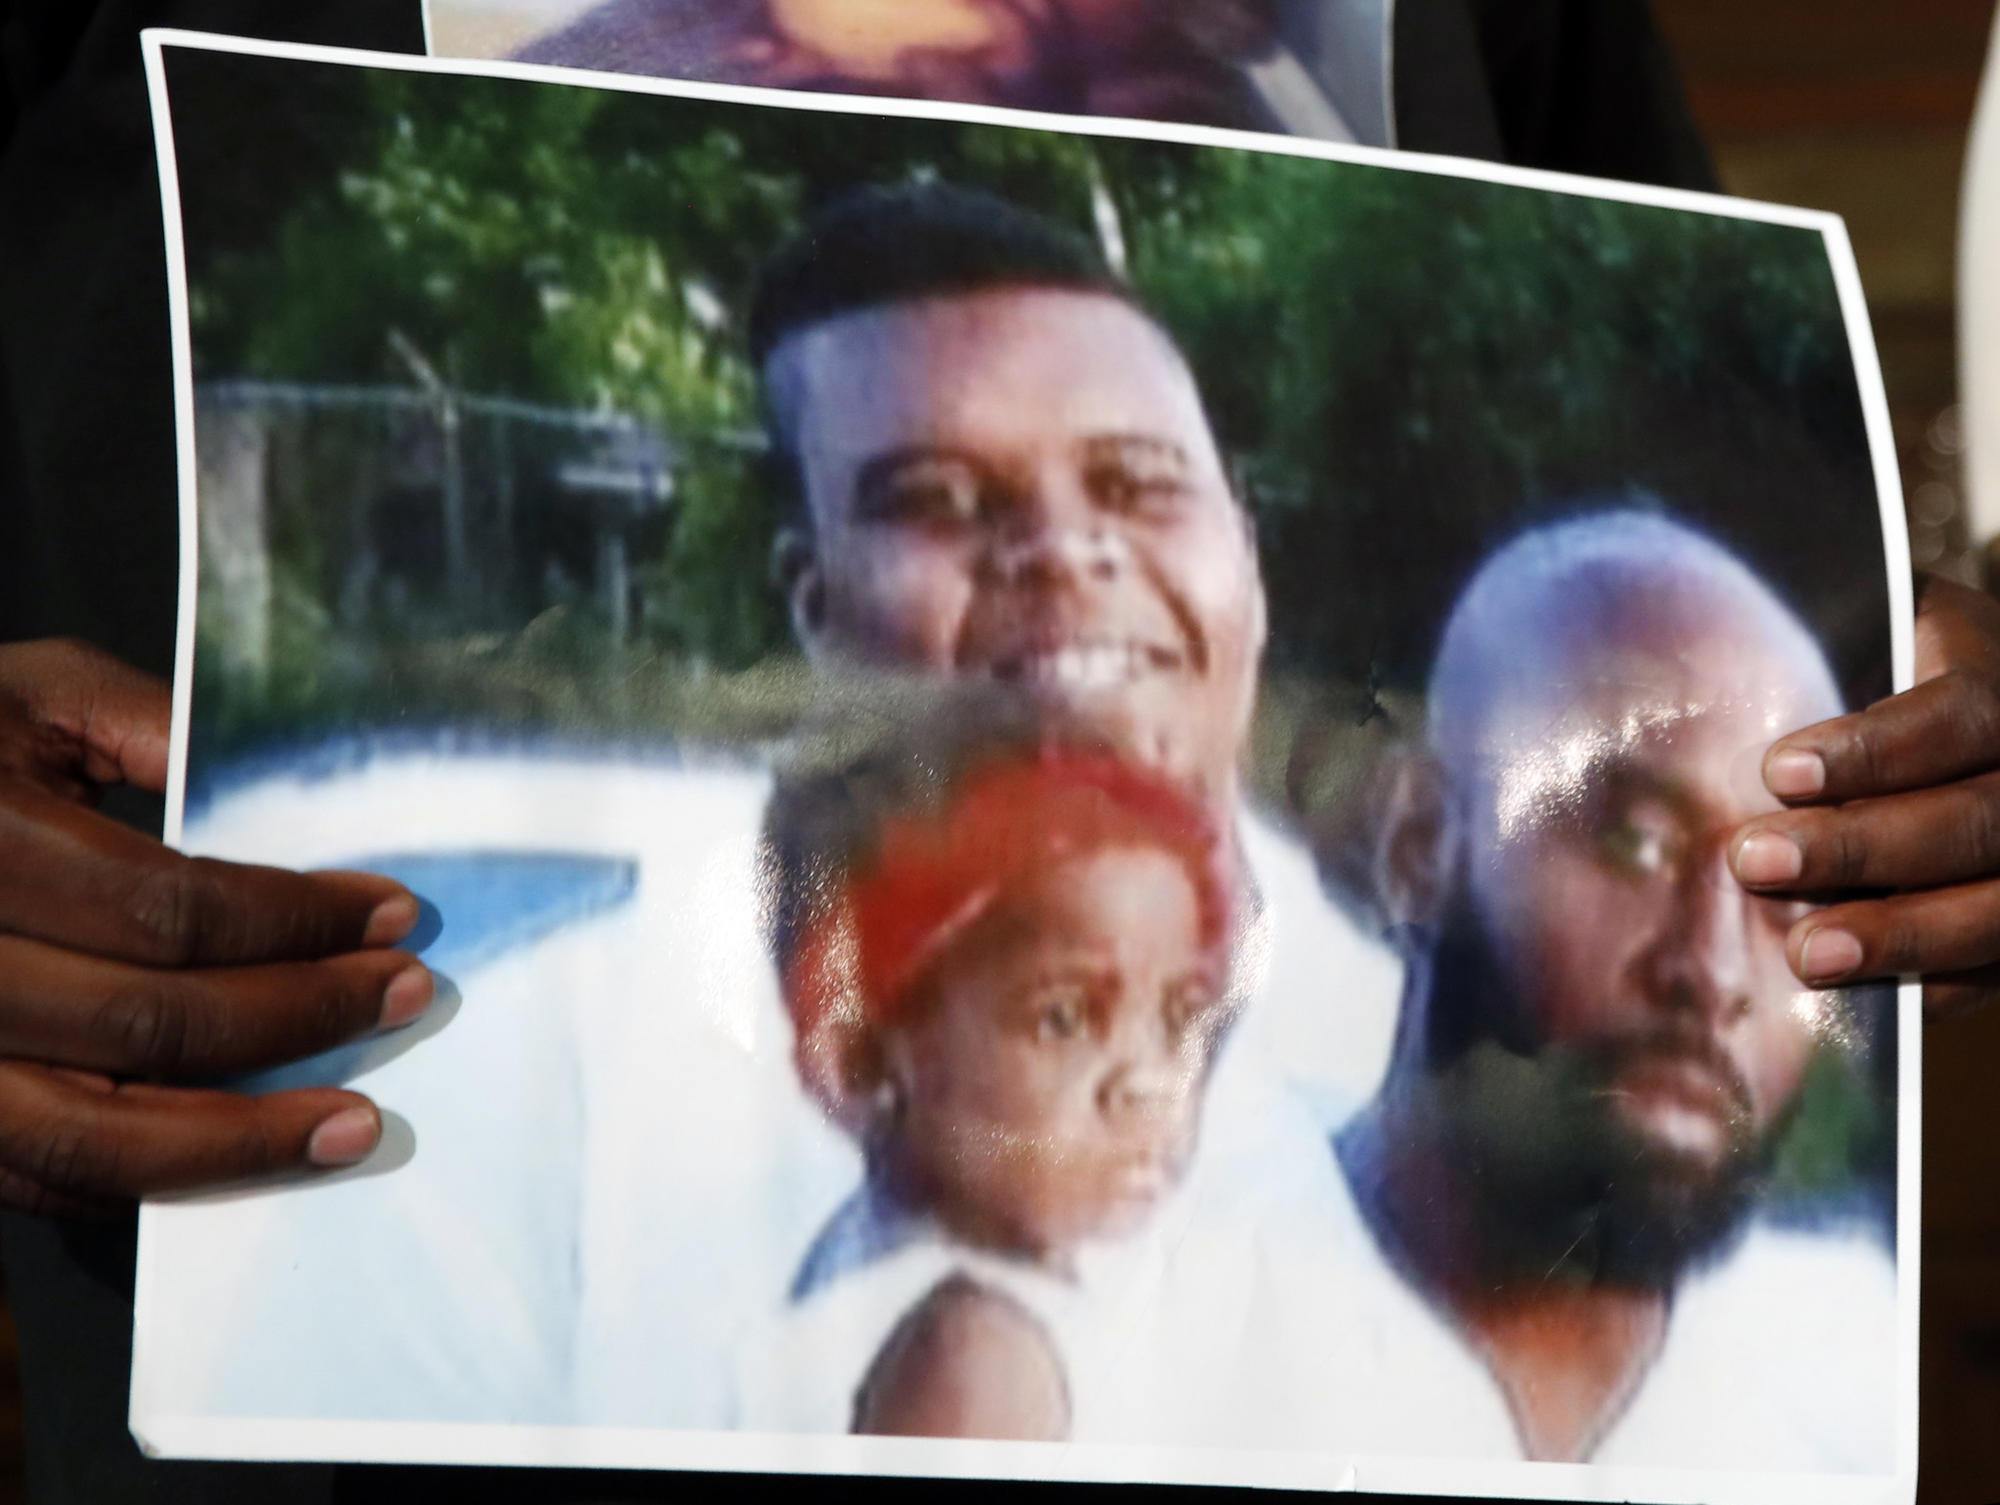 Michael Brown Sr. holds up a photo of himself, at right, his son, Michael Brown, top left, and a young child.